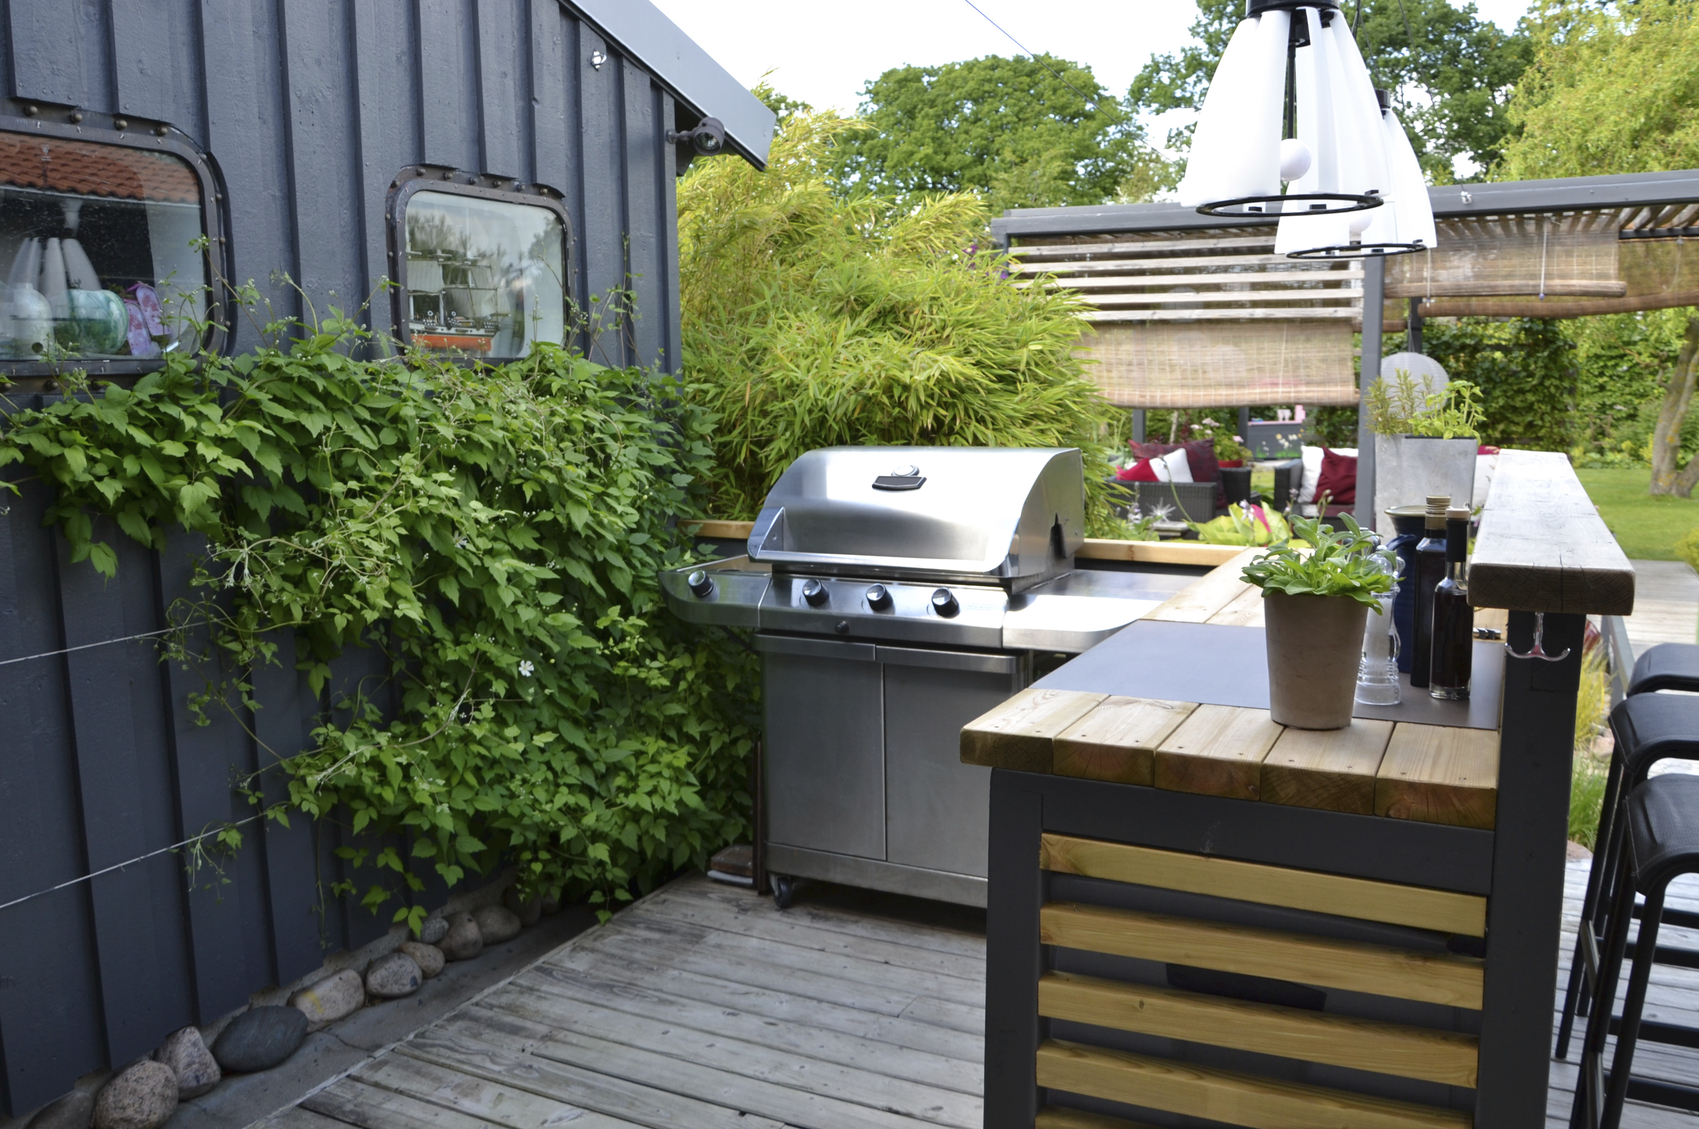 Outdoor Kitchen With A Stainless Gas Grill. Image: Eirasophie Part 36